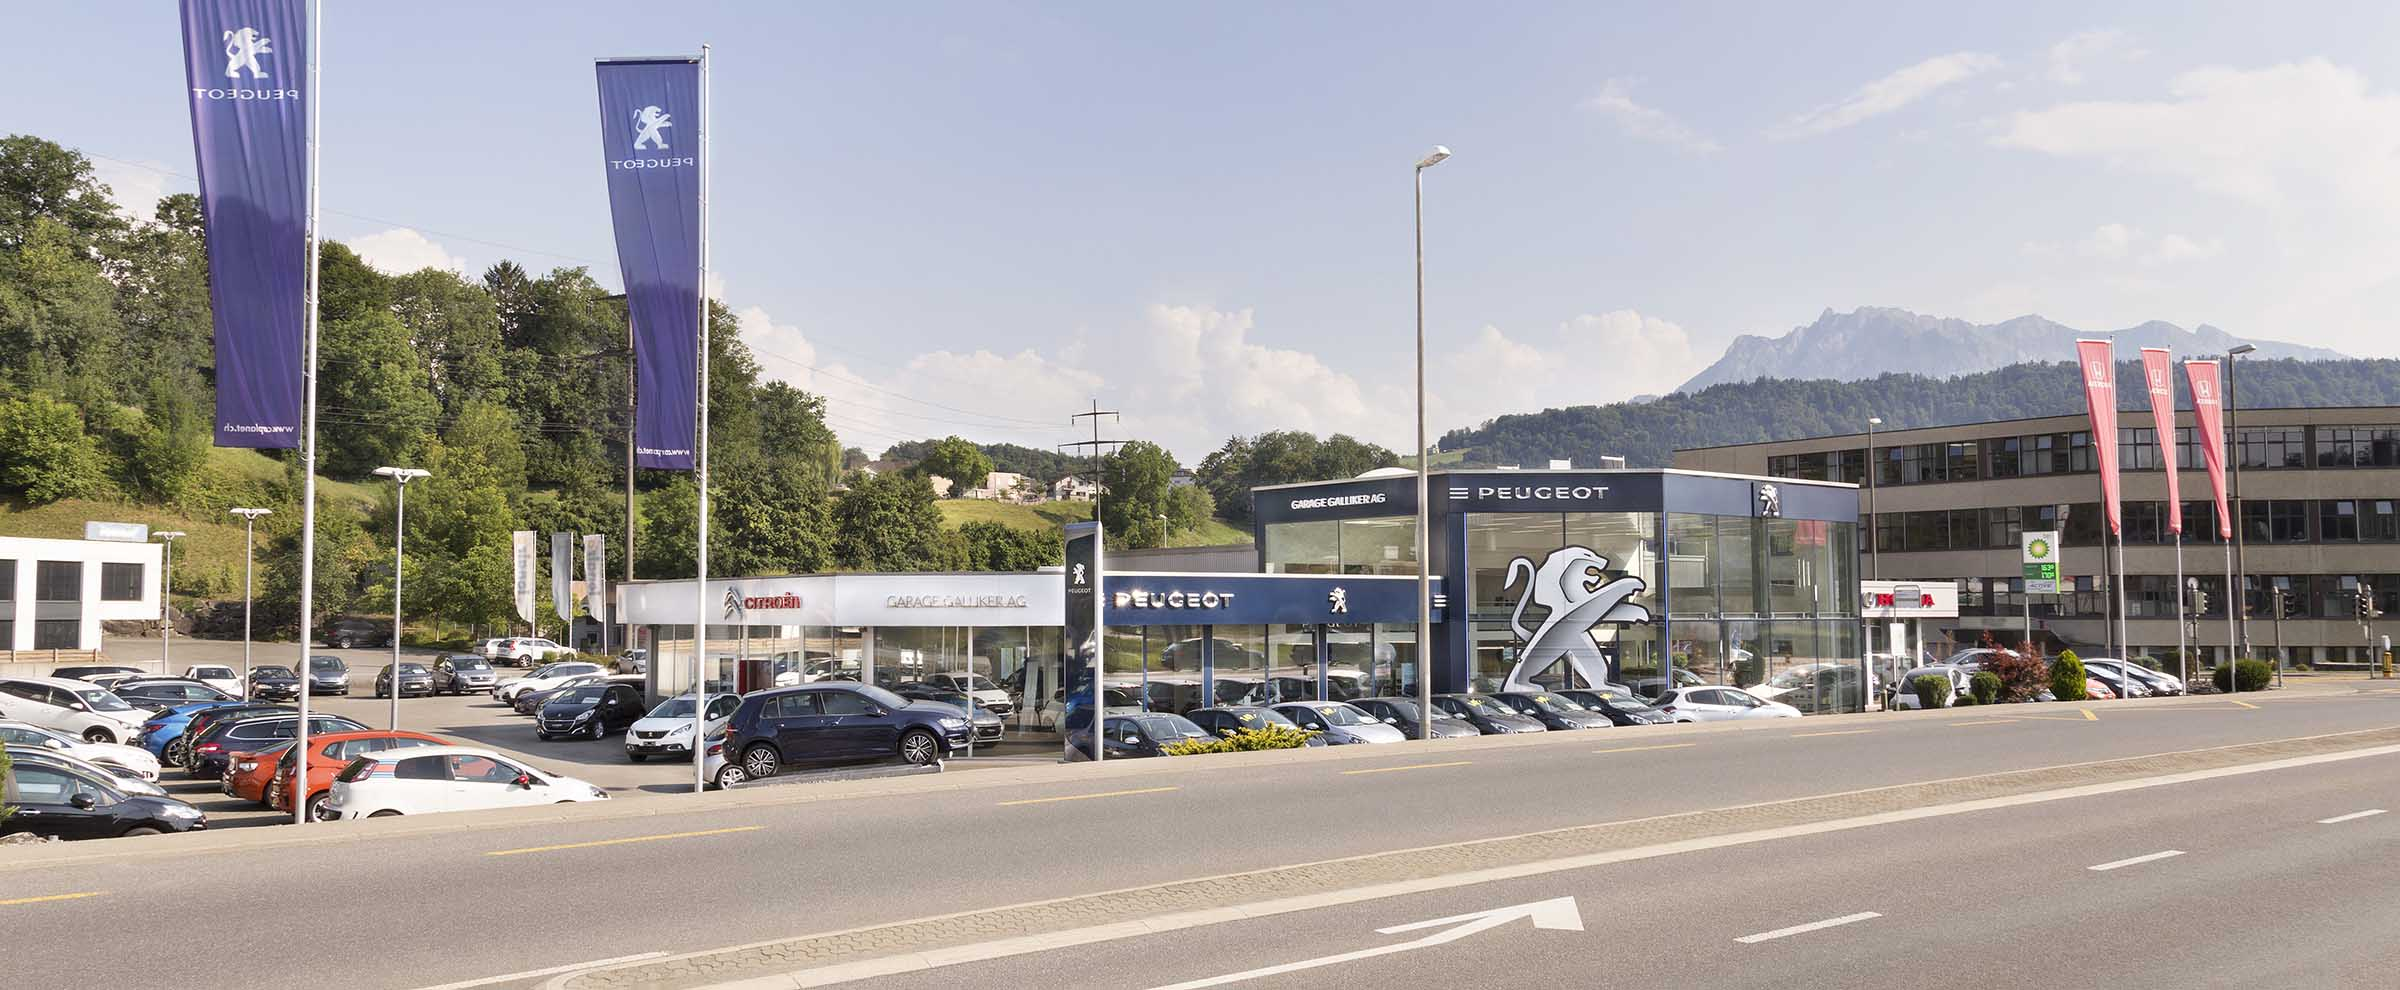 Garage Galliker Luzern Littau